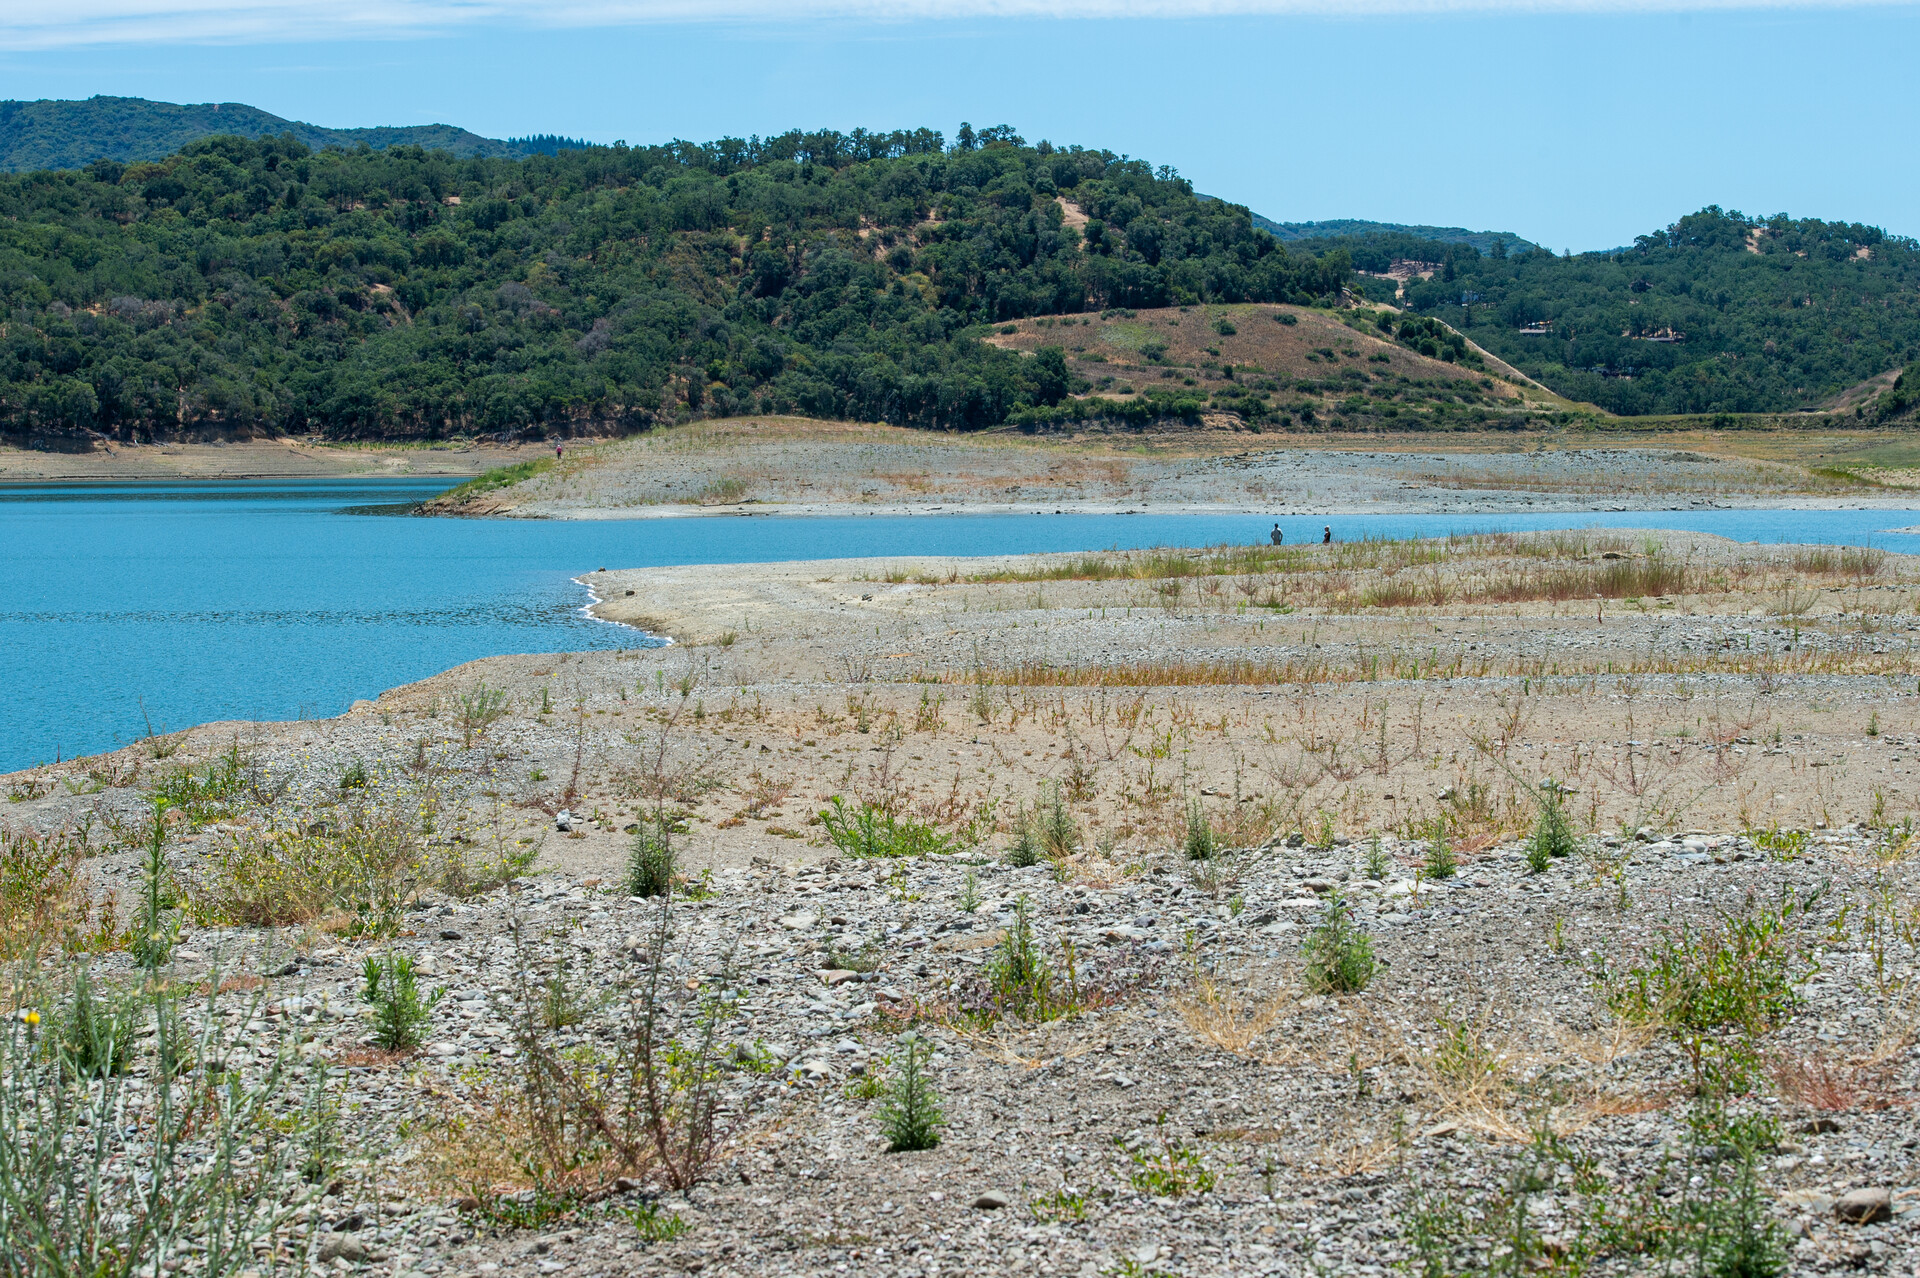 New vegetation grows on what was once the lake bed of Lake Mendocino on June 11, 2021.